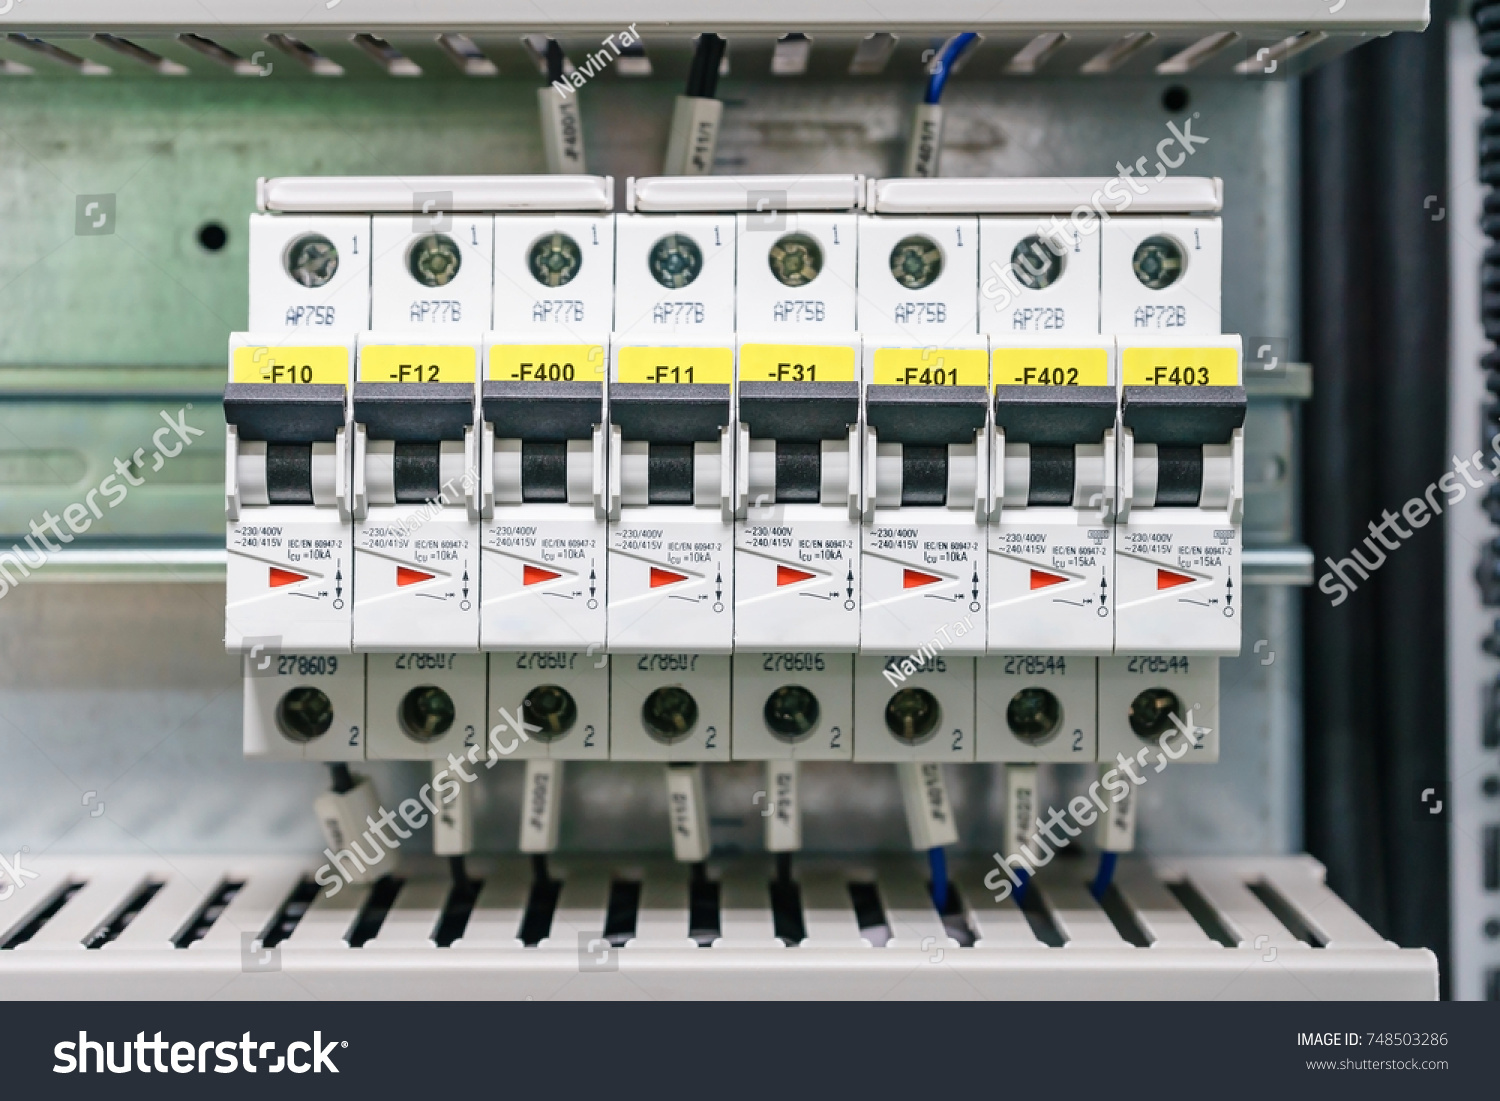 hight resolution of electical distribution fuseboard electrical supplies electrical panel at a assembly line factory controls